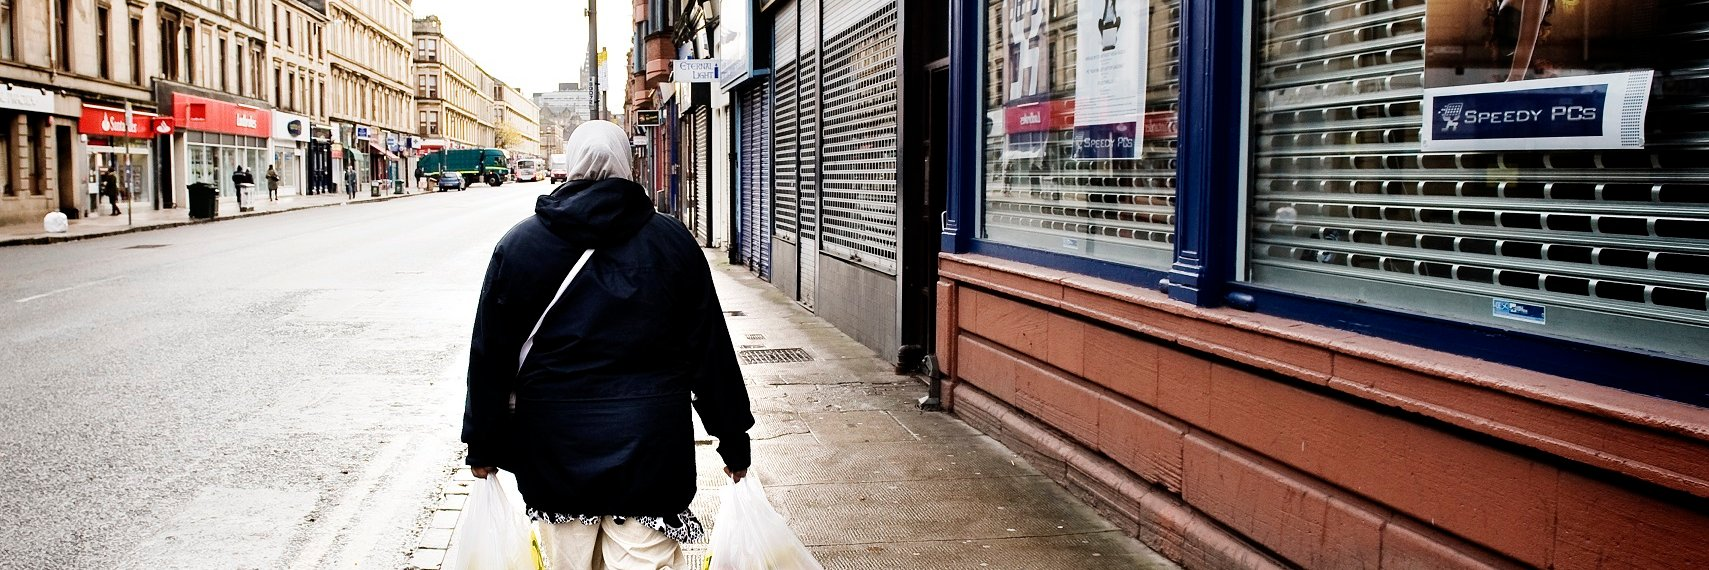 Refused asylum seekers lose their entitlement to Home Office accommodation and financial support 21 days after thei… https://t.co/gBVphXysxA